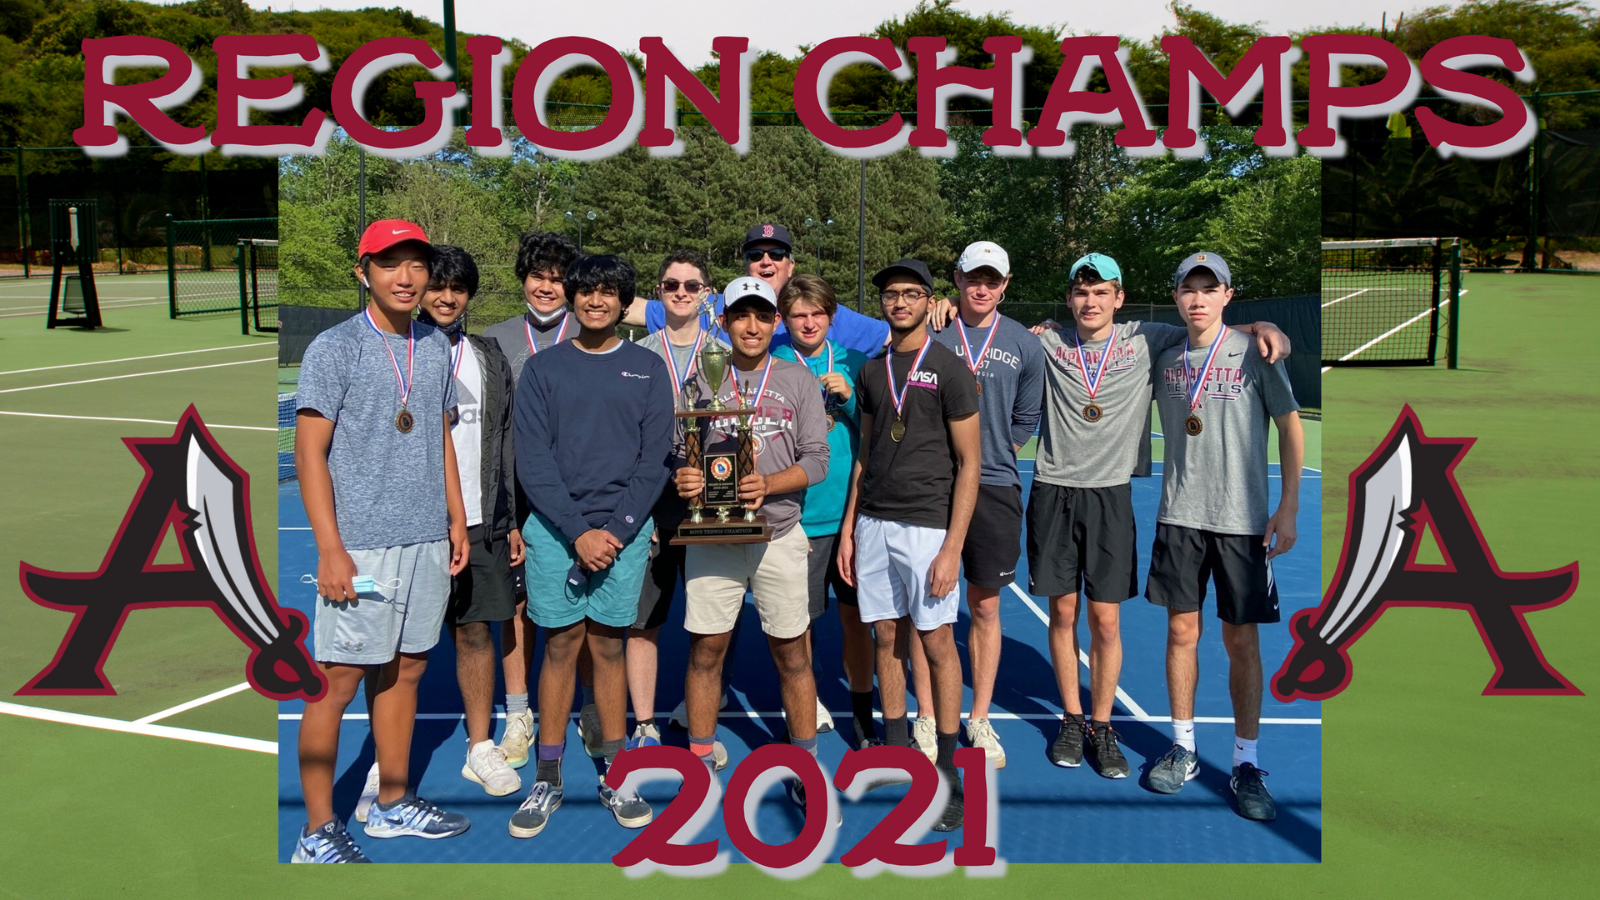 Congrats Tennis – Region Champs